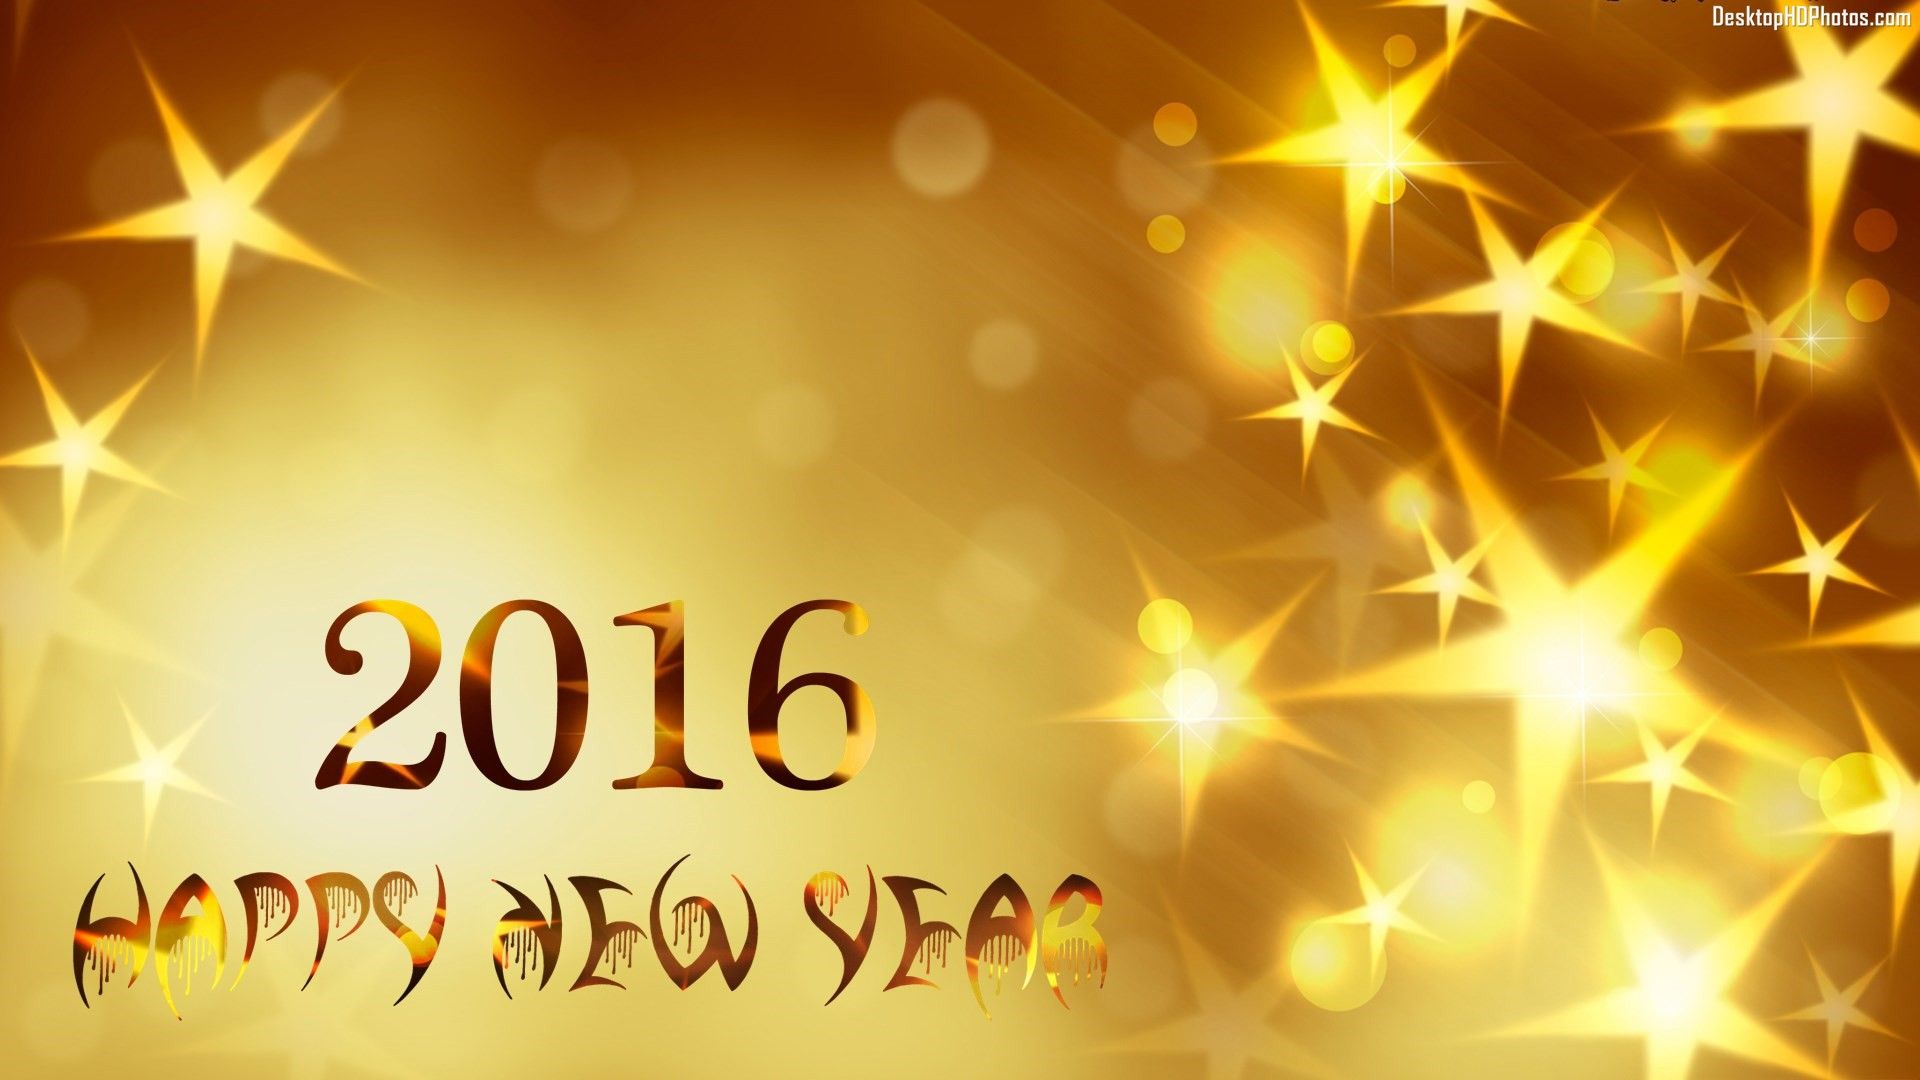 Free download happy new year images 2016 | Happy new year ...